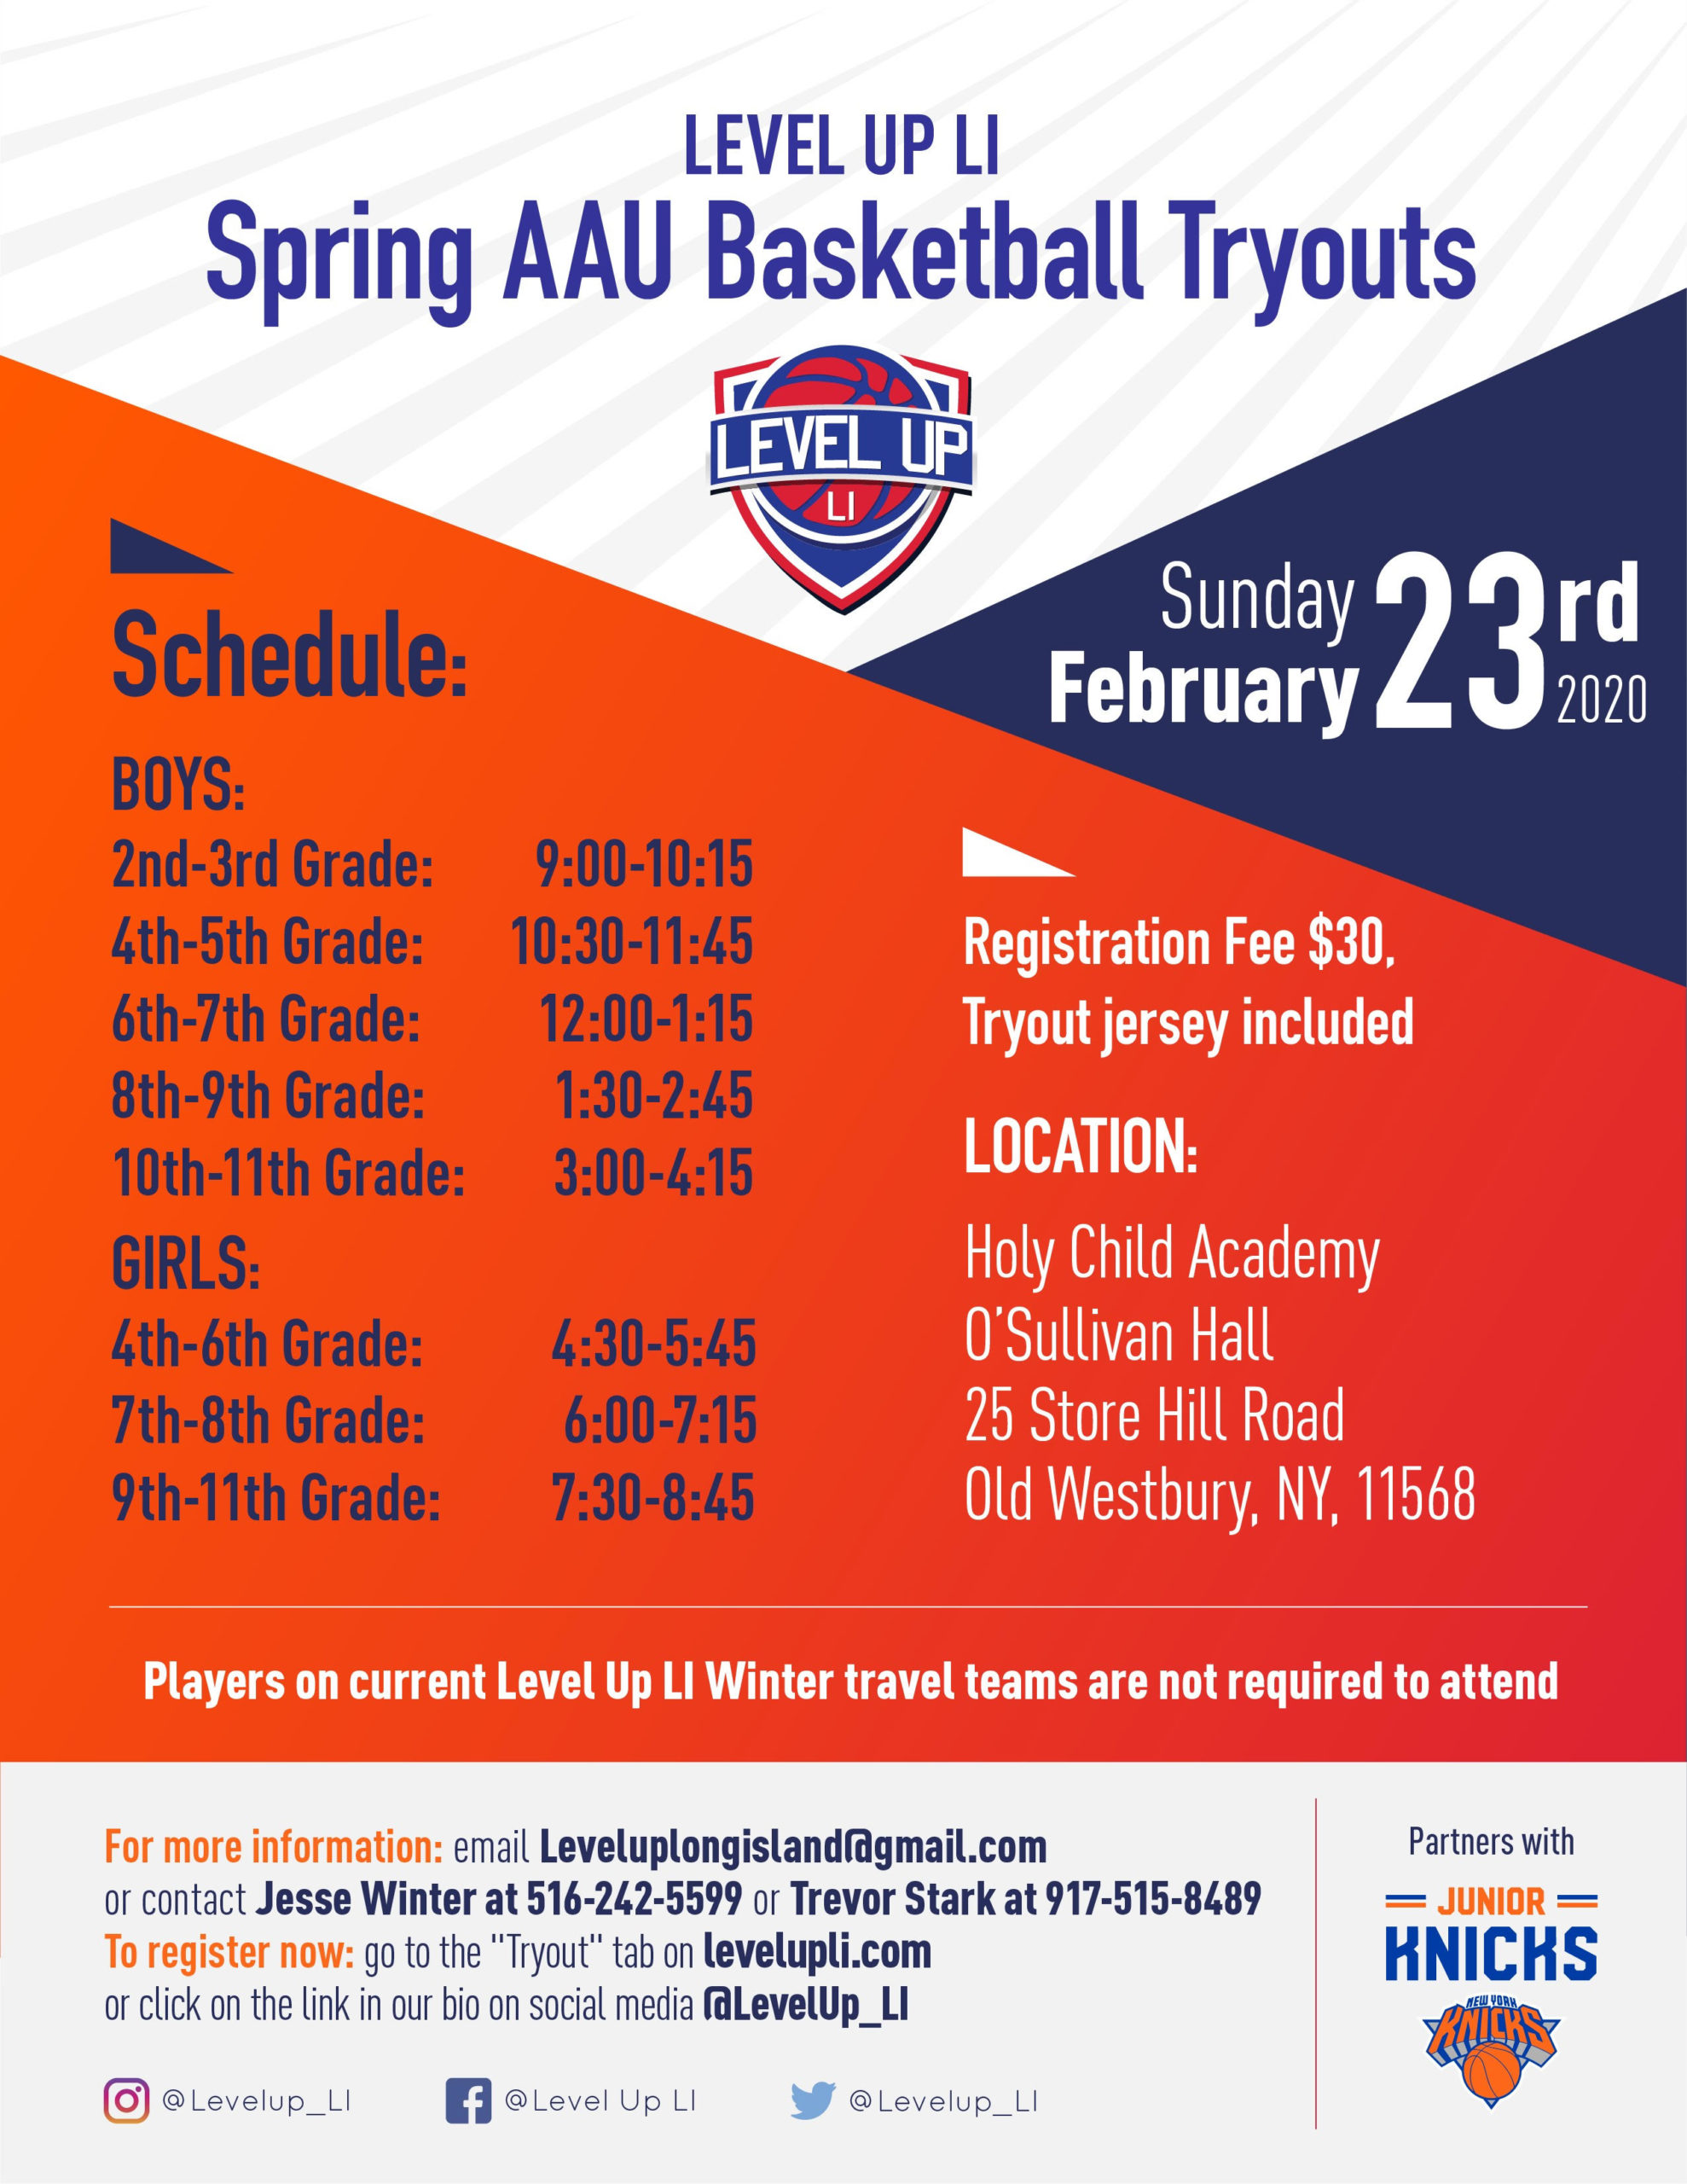 2020 Level Up LI Spring Tryouts